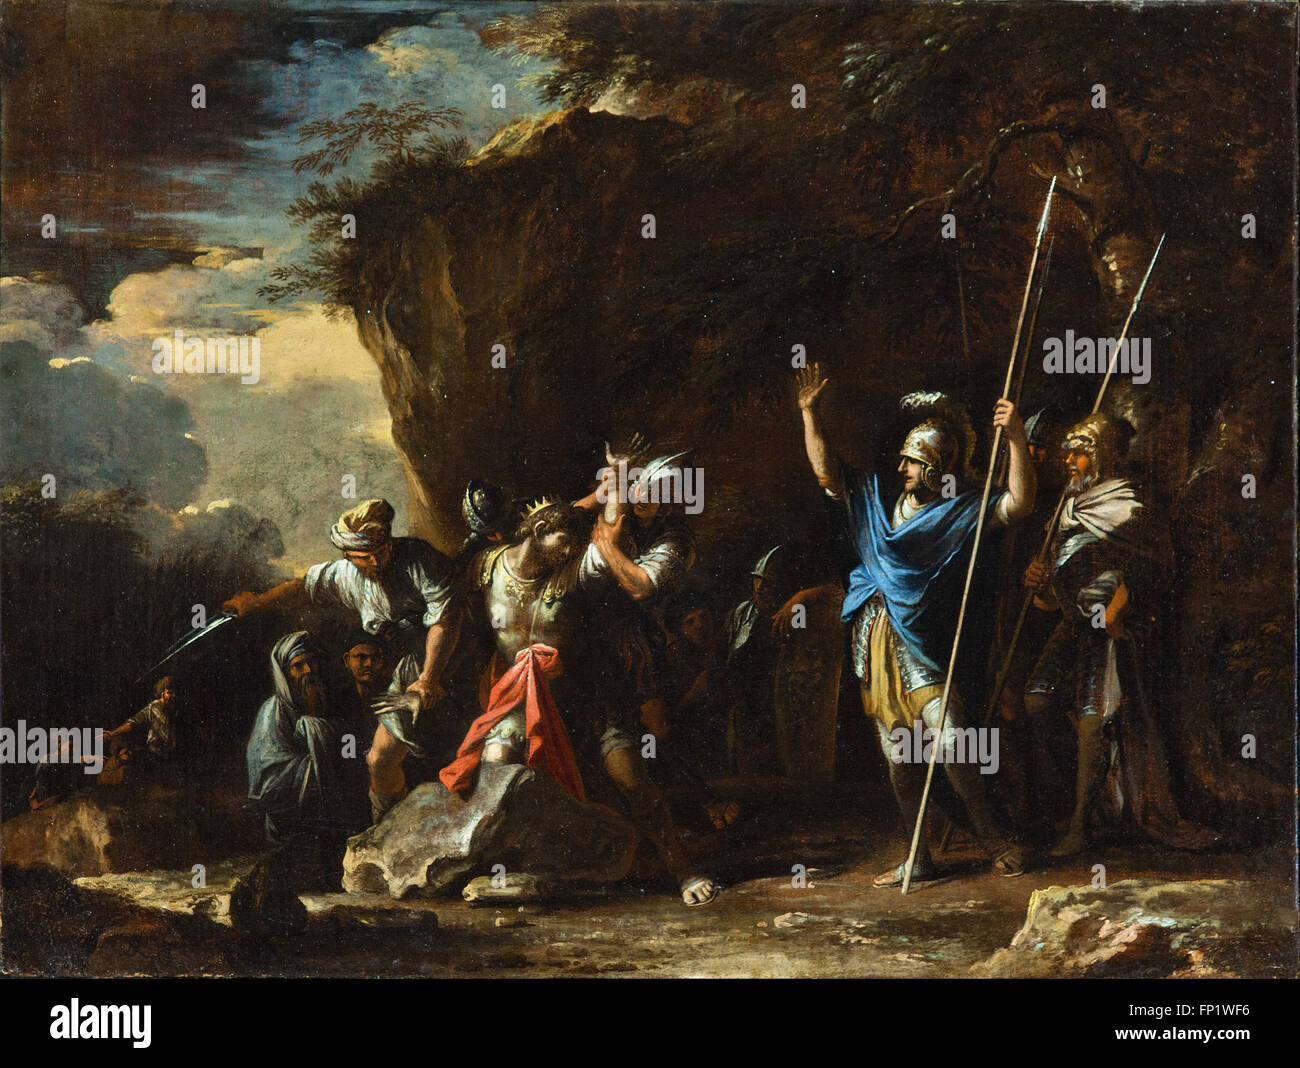 Salvator Rosa - Scene from Greek history- The deaf-mute son of King Croesus - Stock Image